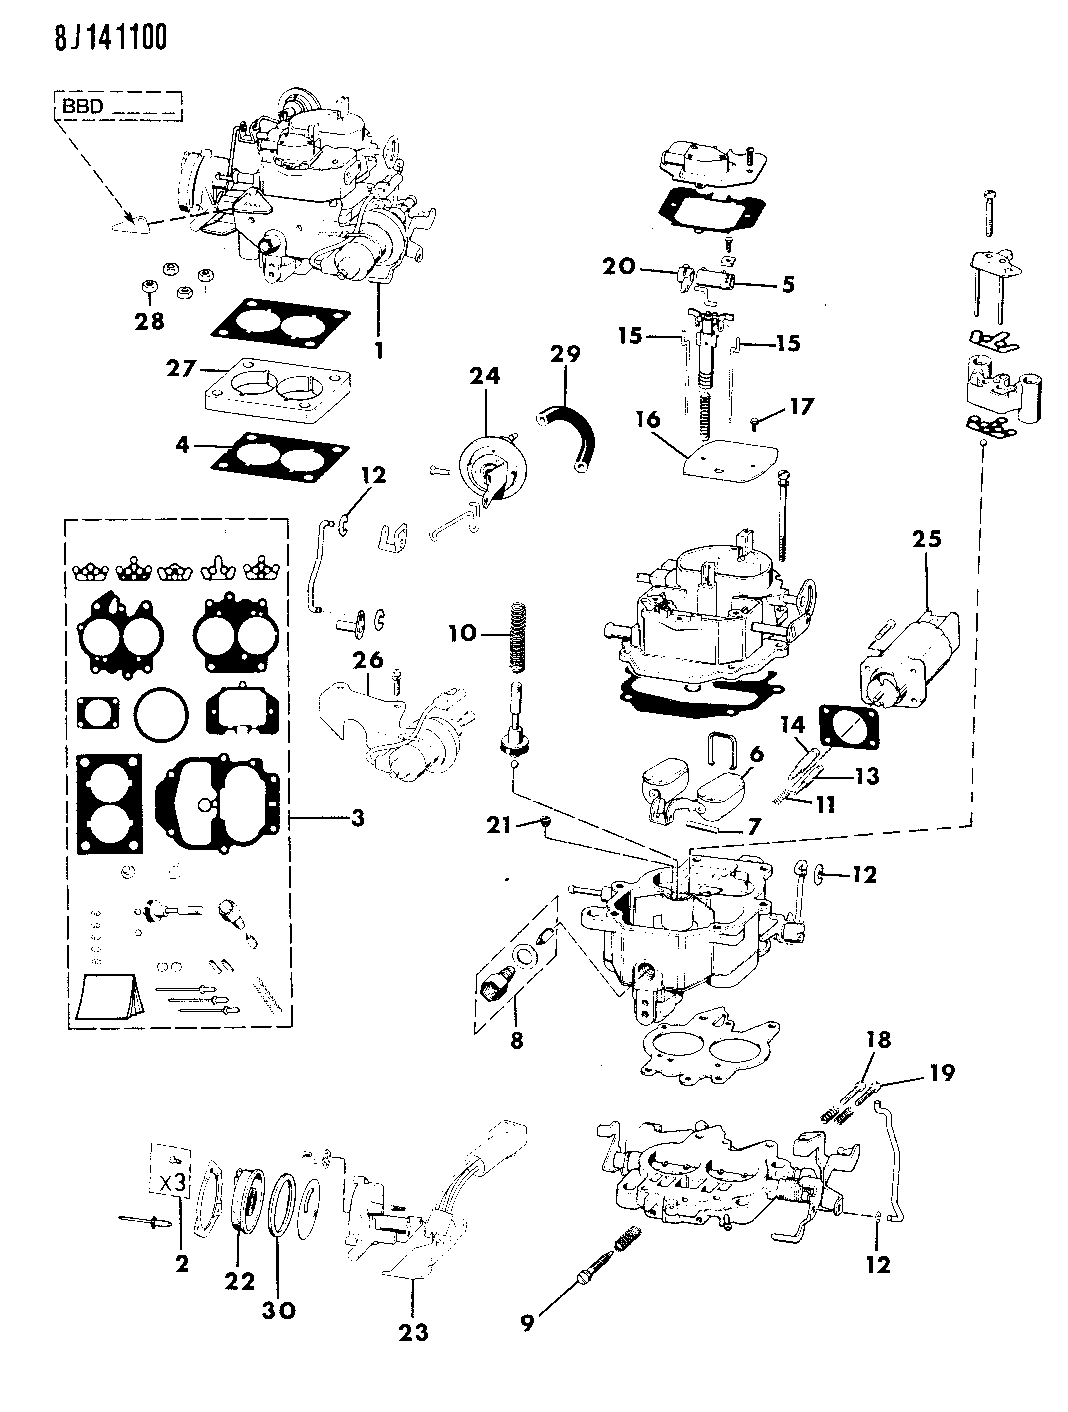 wiring schematic 88 jeep wrangler carburetor